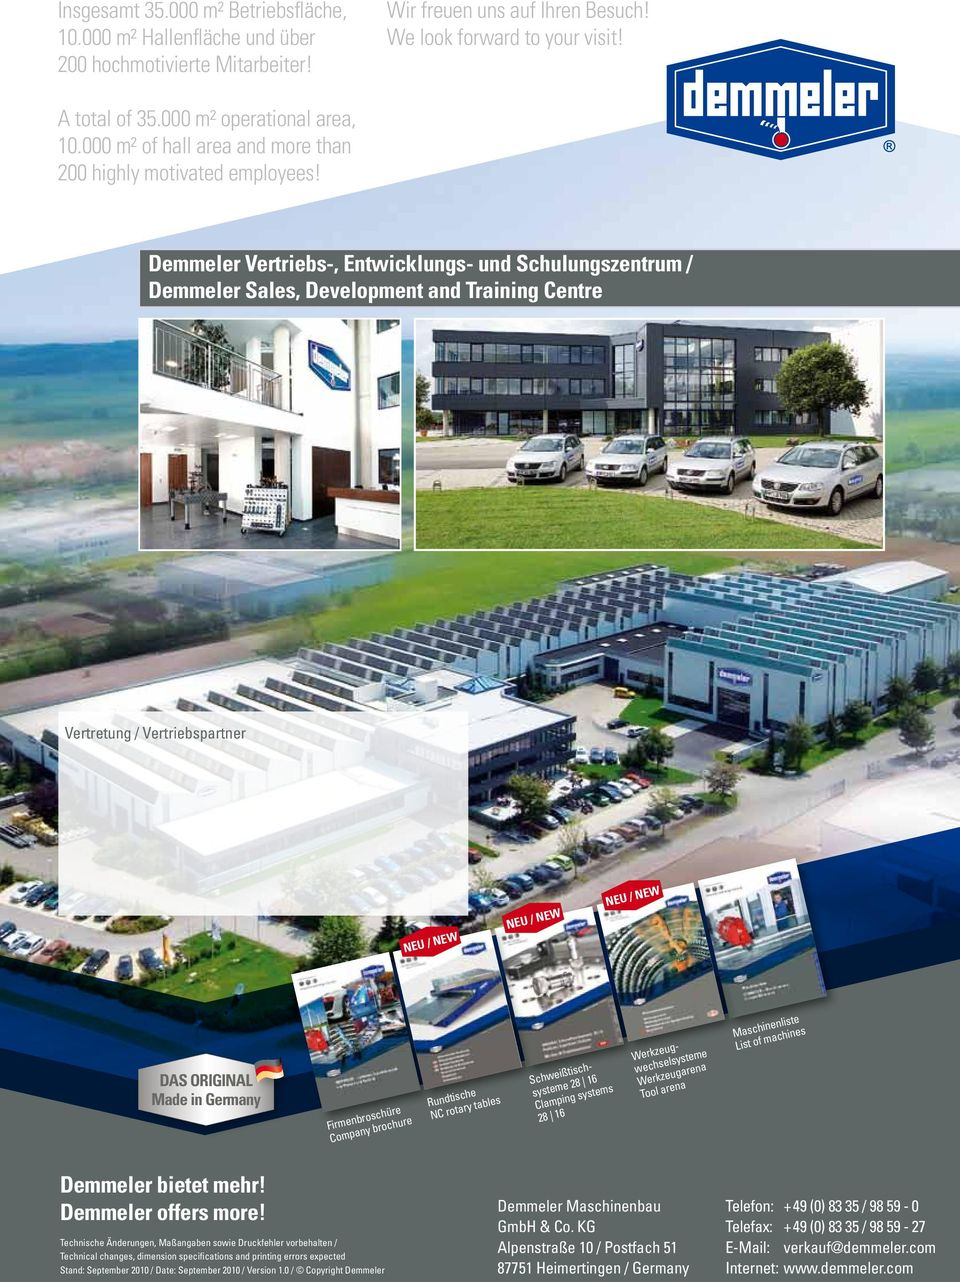 Demmeler Vertriebs-, Entwicklungs- und Schulungszentrum / Demmeler Sales, Development and Training Centre Vertretung / Vertriebspartner NEU / NEW NEU / NEW NEU / NEW DAS ORIGINAL Made in Germany